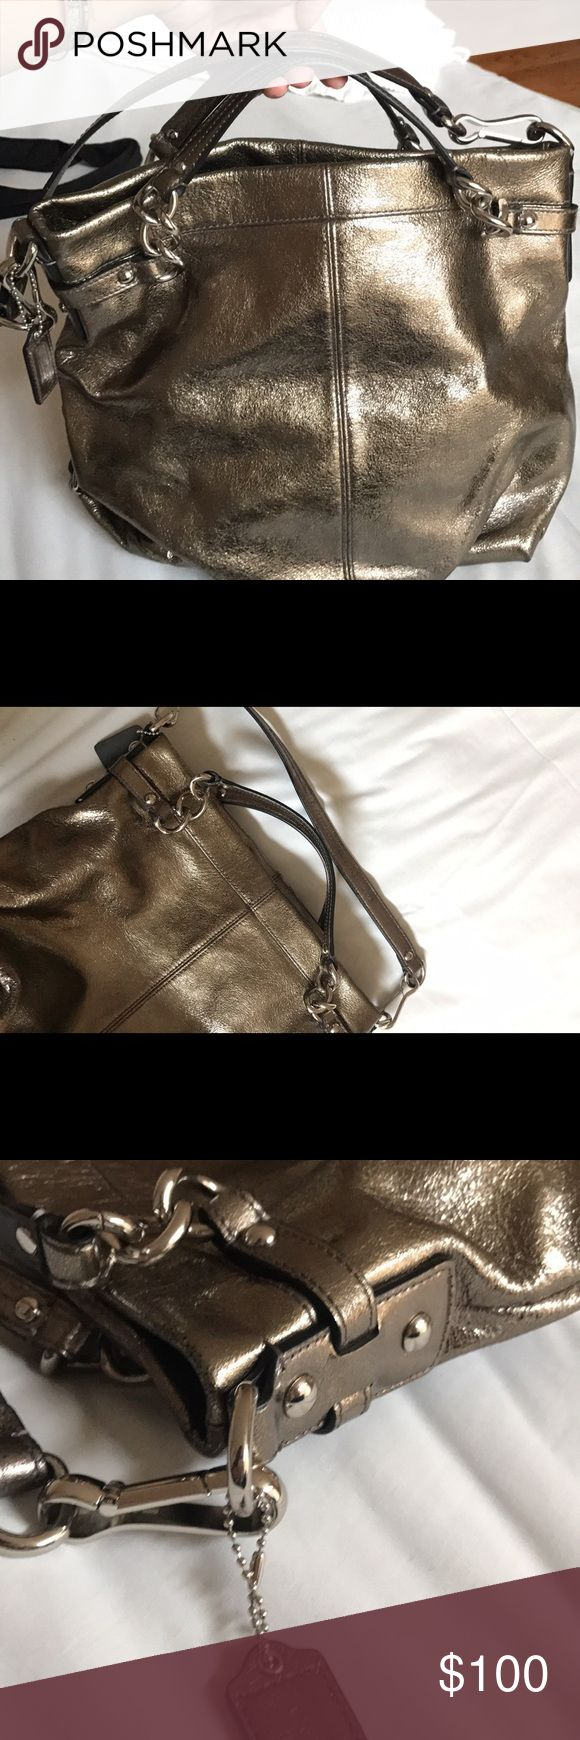 Coach Metallic Silver Shoulder Purse Coach Metallic Silver Shoulder Purse. in great condition. Preowned but very nice. Bag has zippers with Stainless Steel Accents. Coach Bags Shoulder Bags